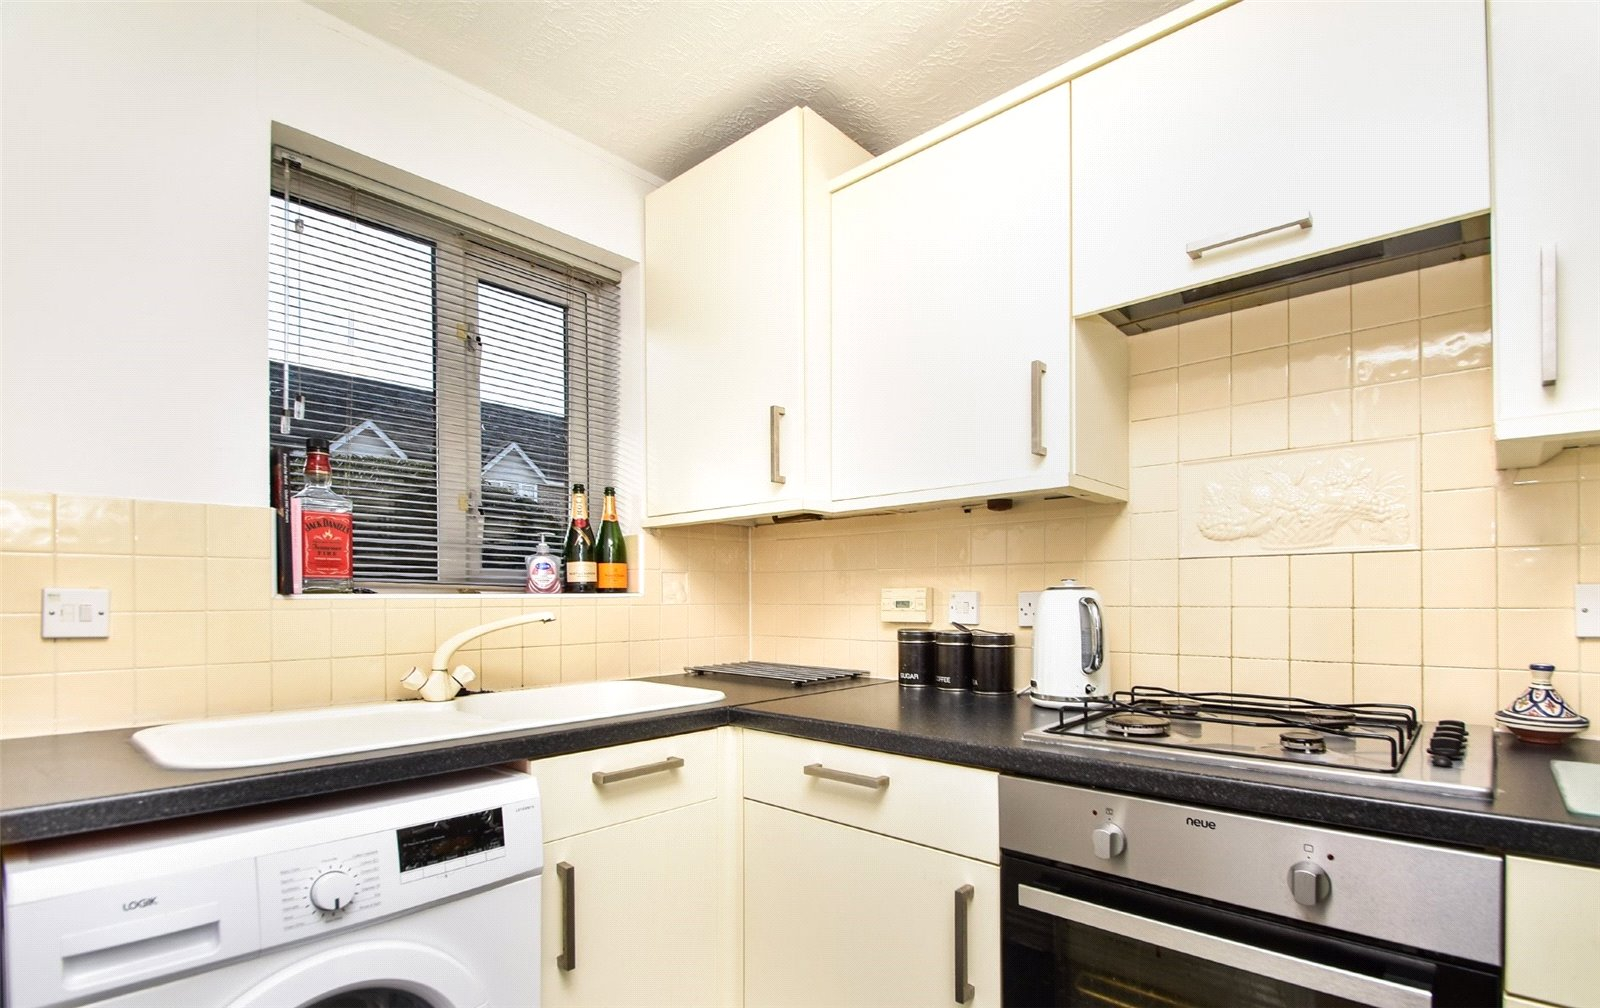 2 bed house to rent in New Southgate, N11 3PY  - Property Image 3